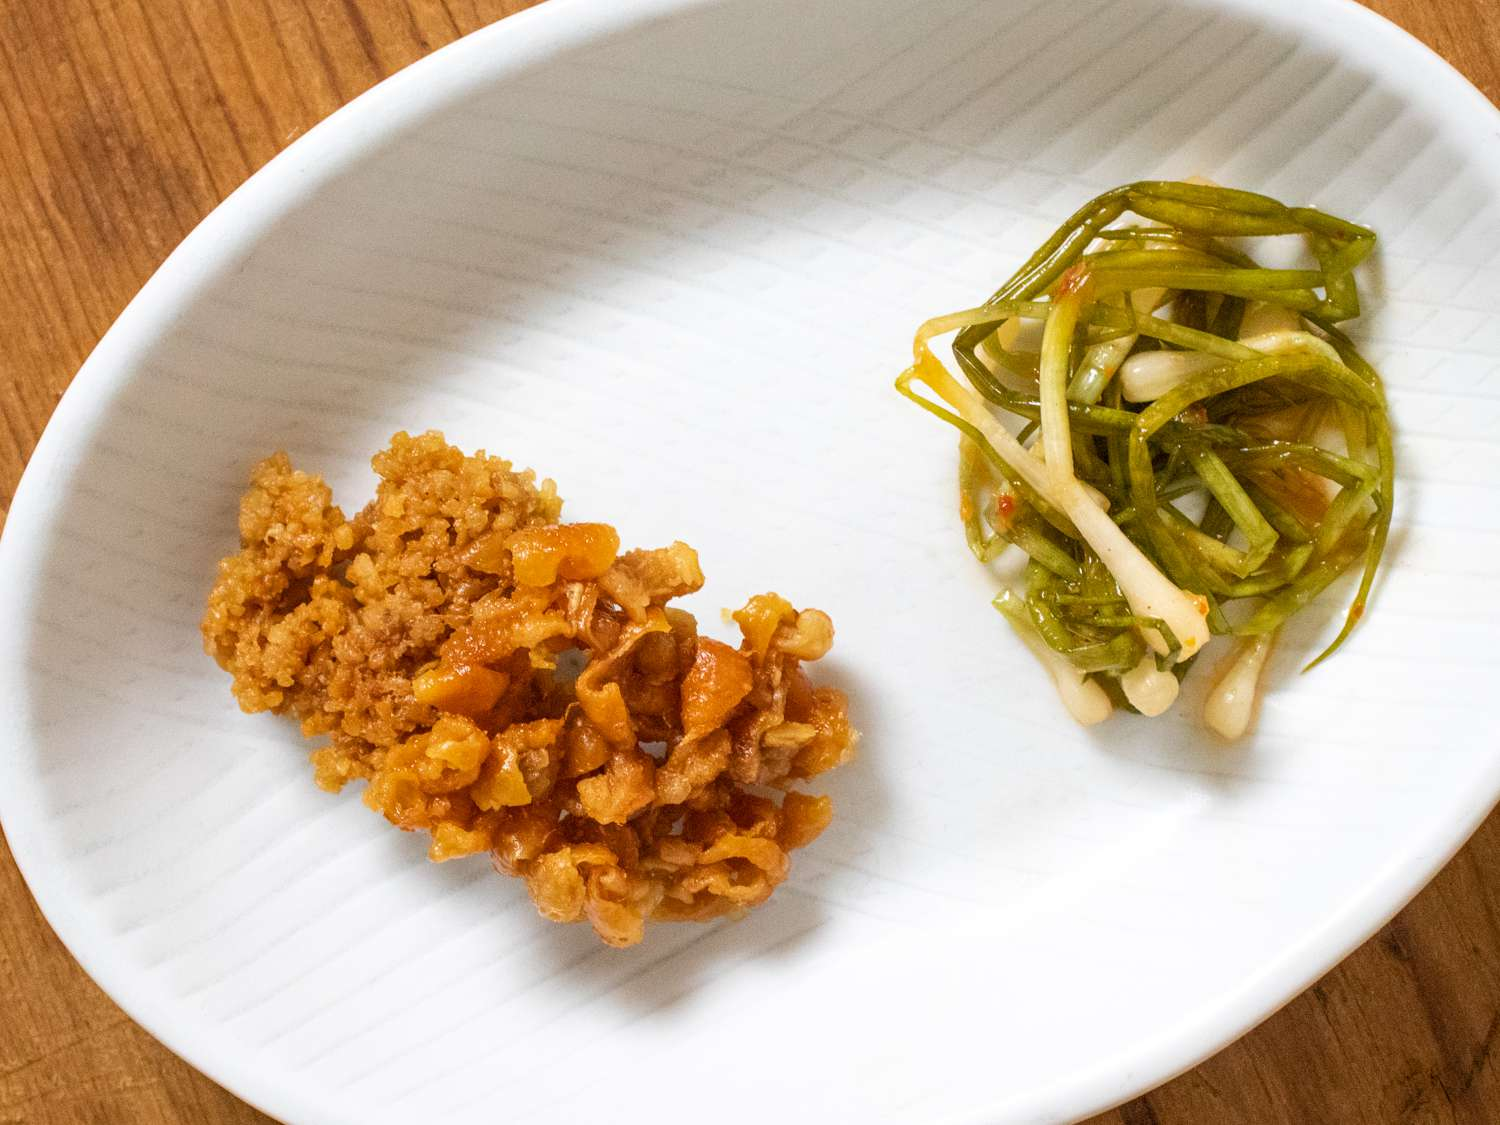 Little chicken skin chips on a plate with a pile of naga negi kimchi